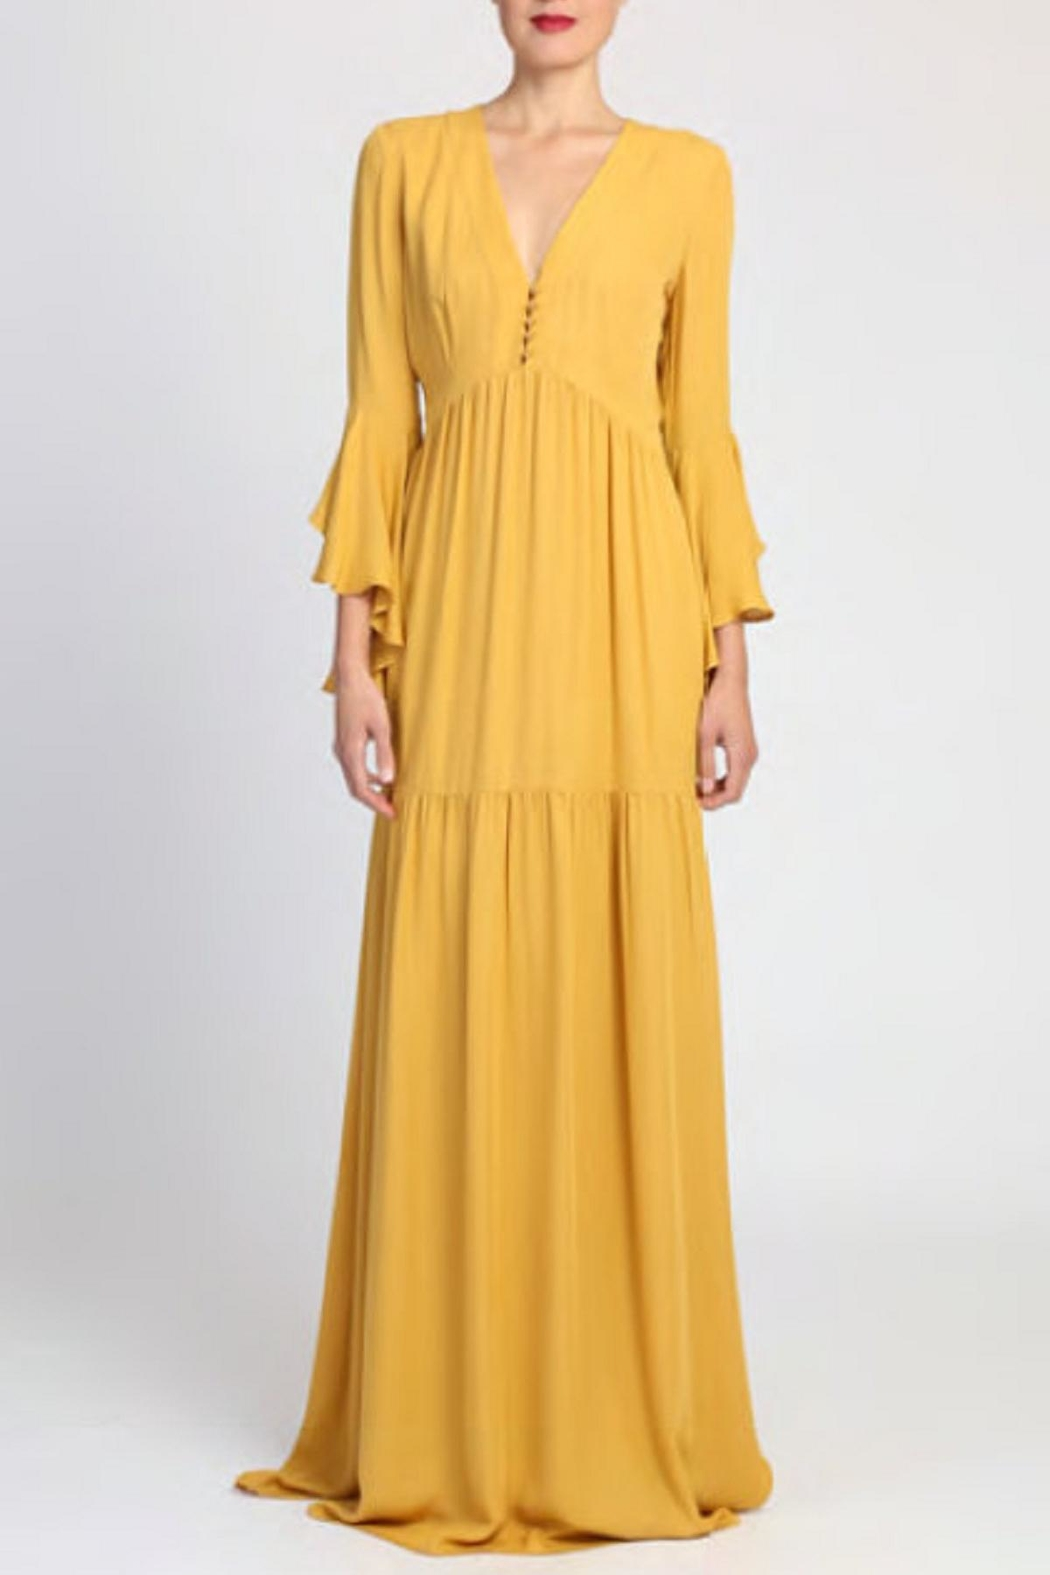 Badgley Mischka 3/4 Sleeve Dress from New Jersey by District 5 ...